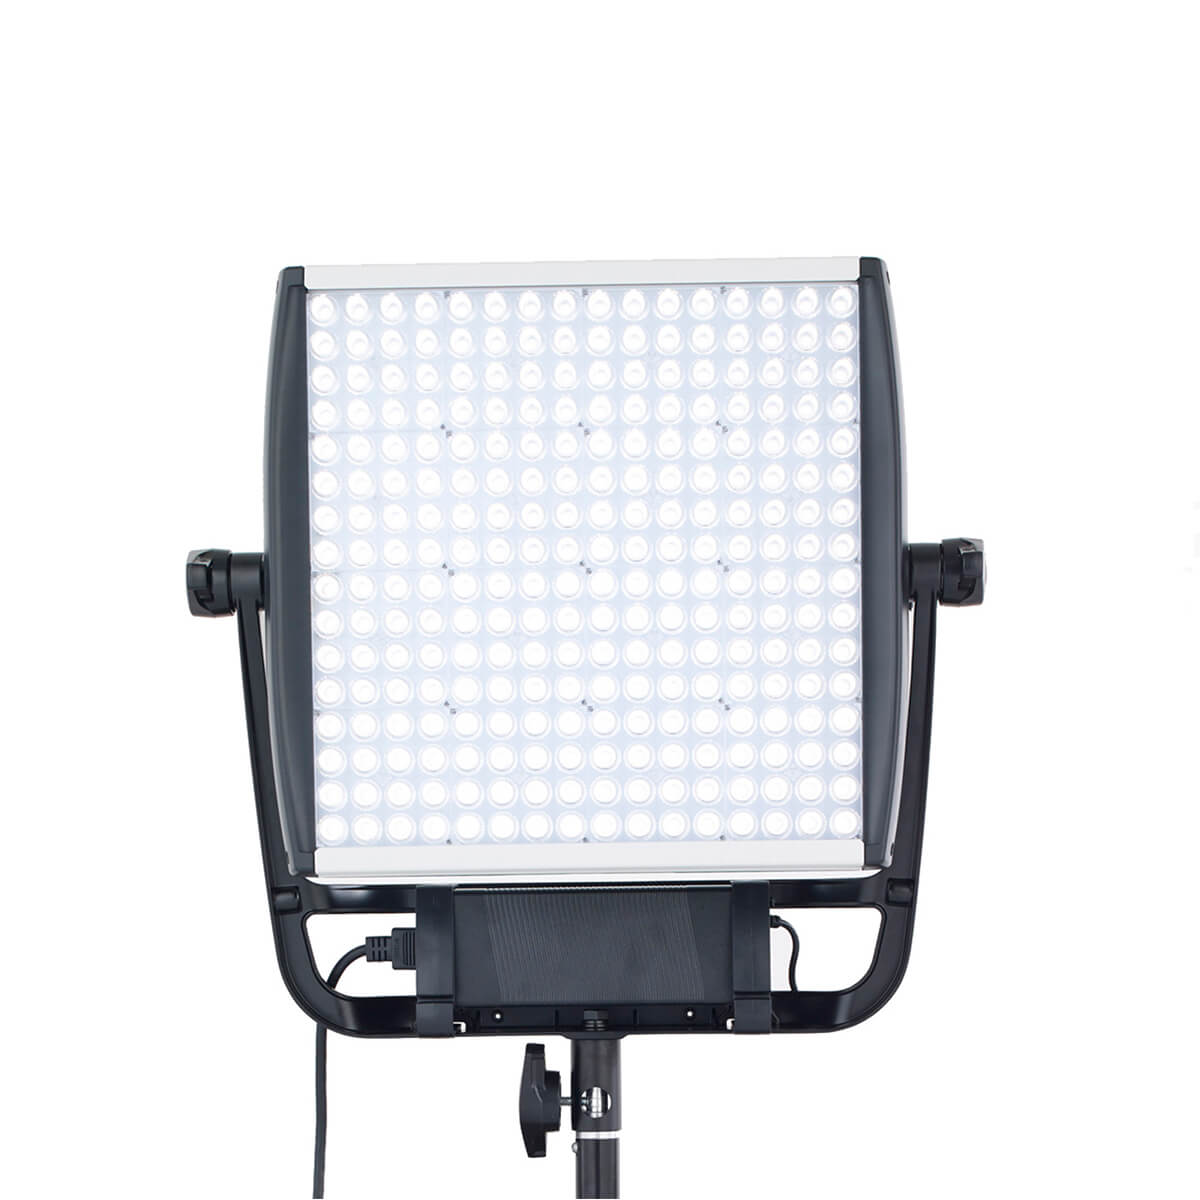 Litepanels Astra 1x1 EP Daylight LED Panel